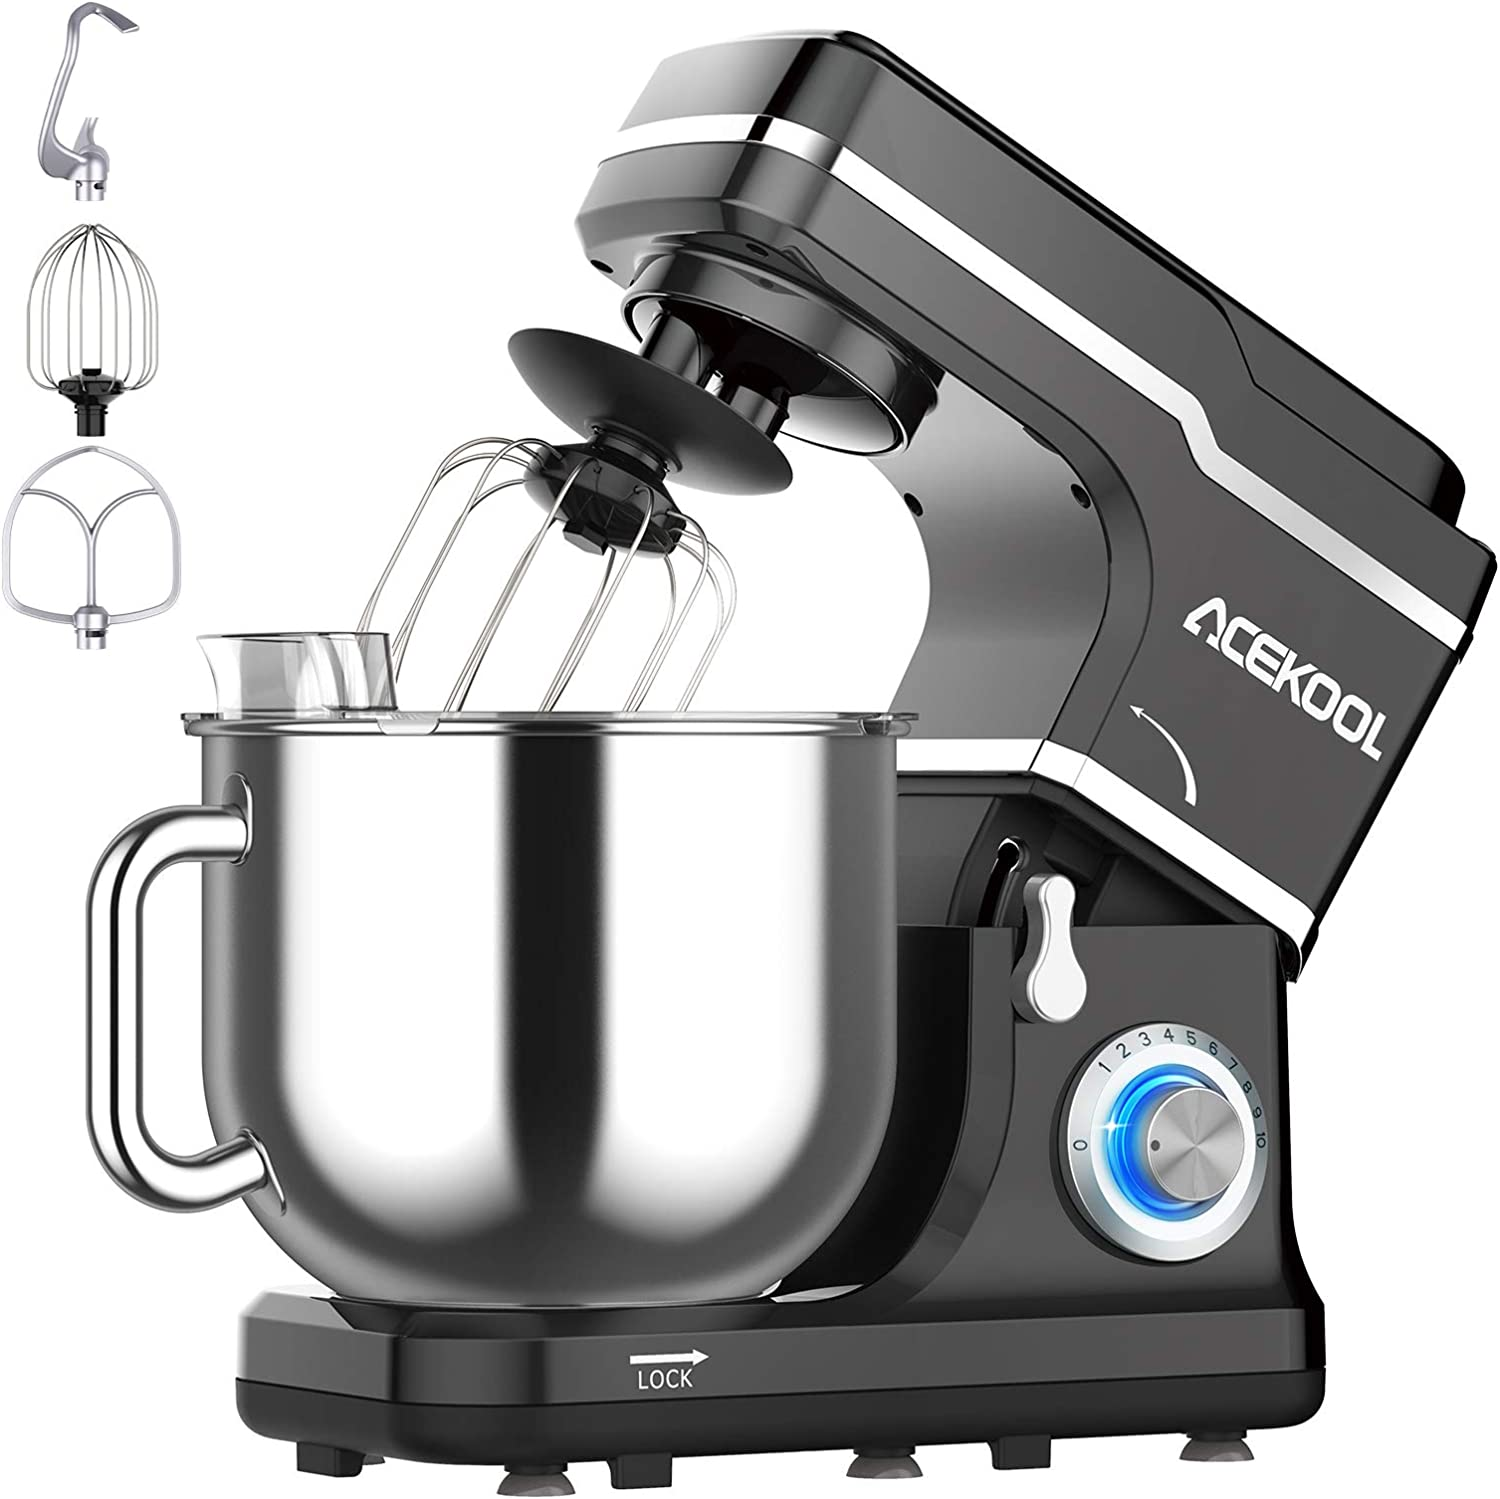 Stand Mixer, 10-Speed 7.5-QT Electric Mixer Kitchen Dough Mixer Food Mixer for Baking&Cake, with Stainless Steel Bowl, Whisk, Dough Hook, Beater, Splash Guard (660W)BLACK